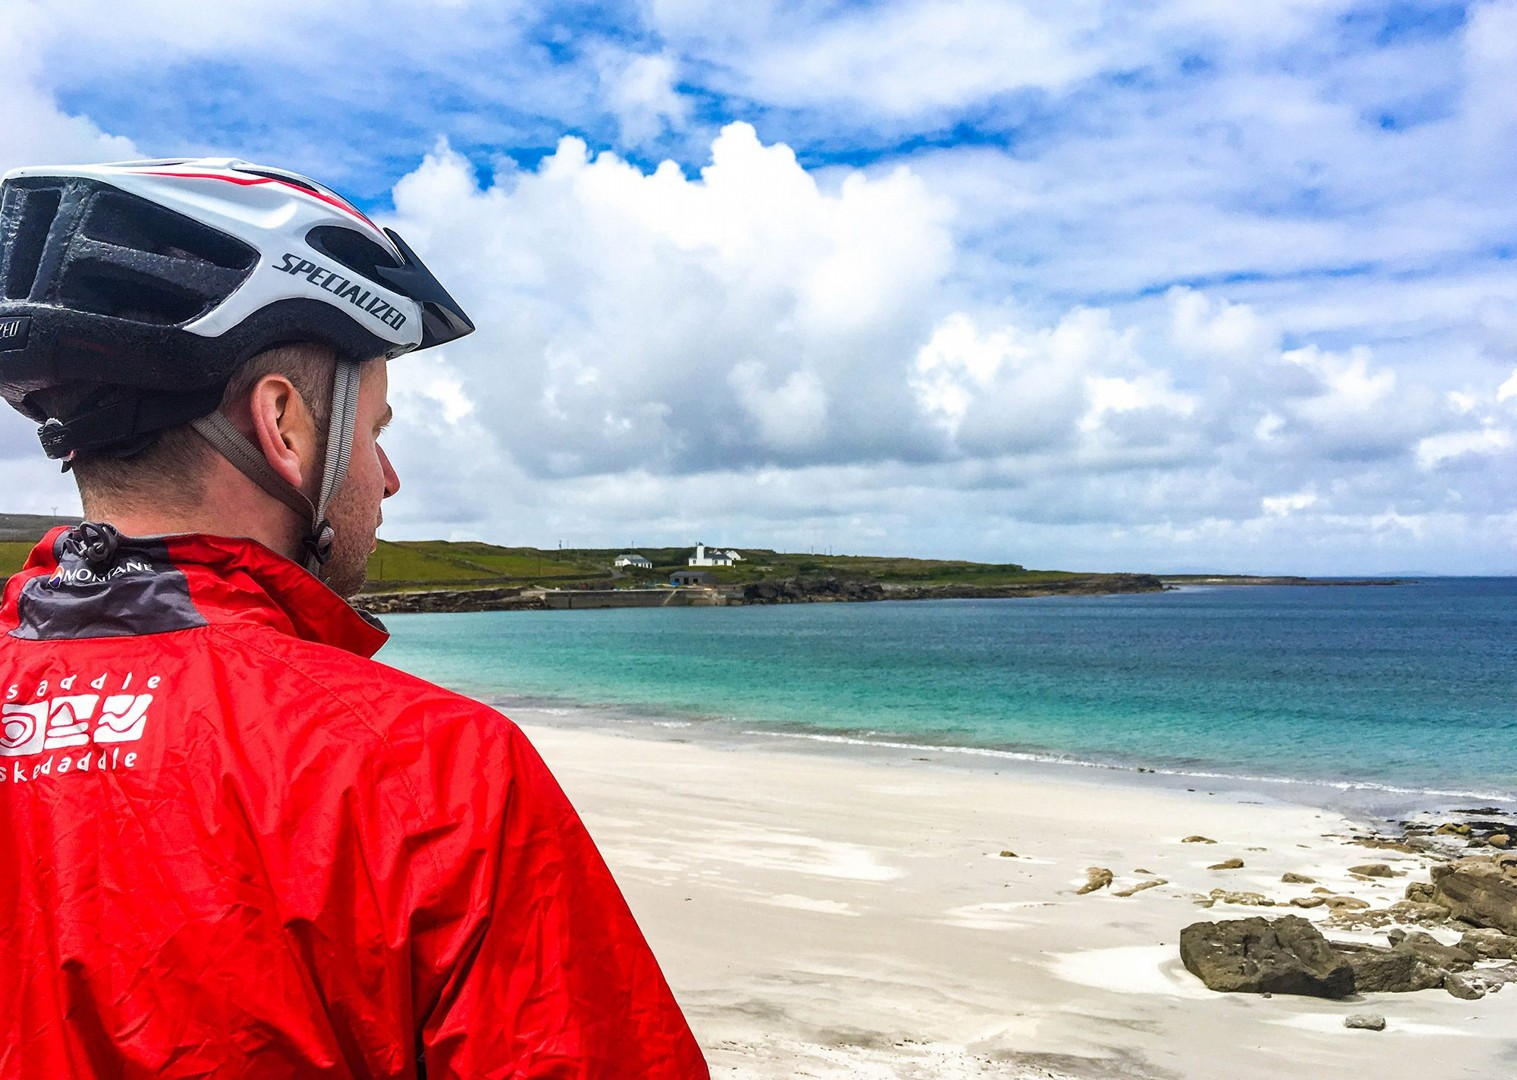 irish-beaches-cycling-in-ireland-self-guided-leisure-trip-saddle-skedaddle-holiday.jpg - NEW! Ireland - Connemara and the Aran Isles - Leisure Cycling